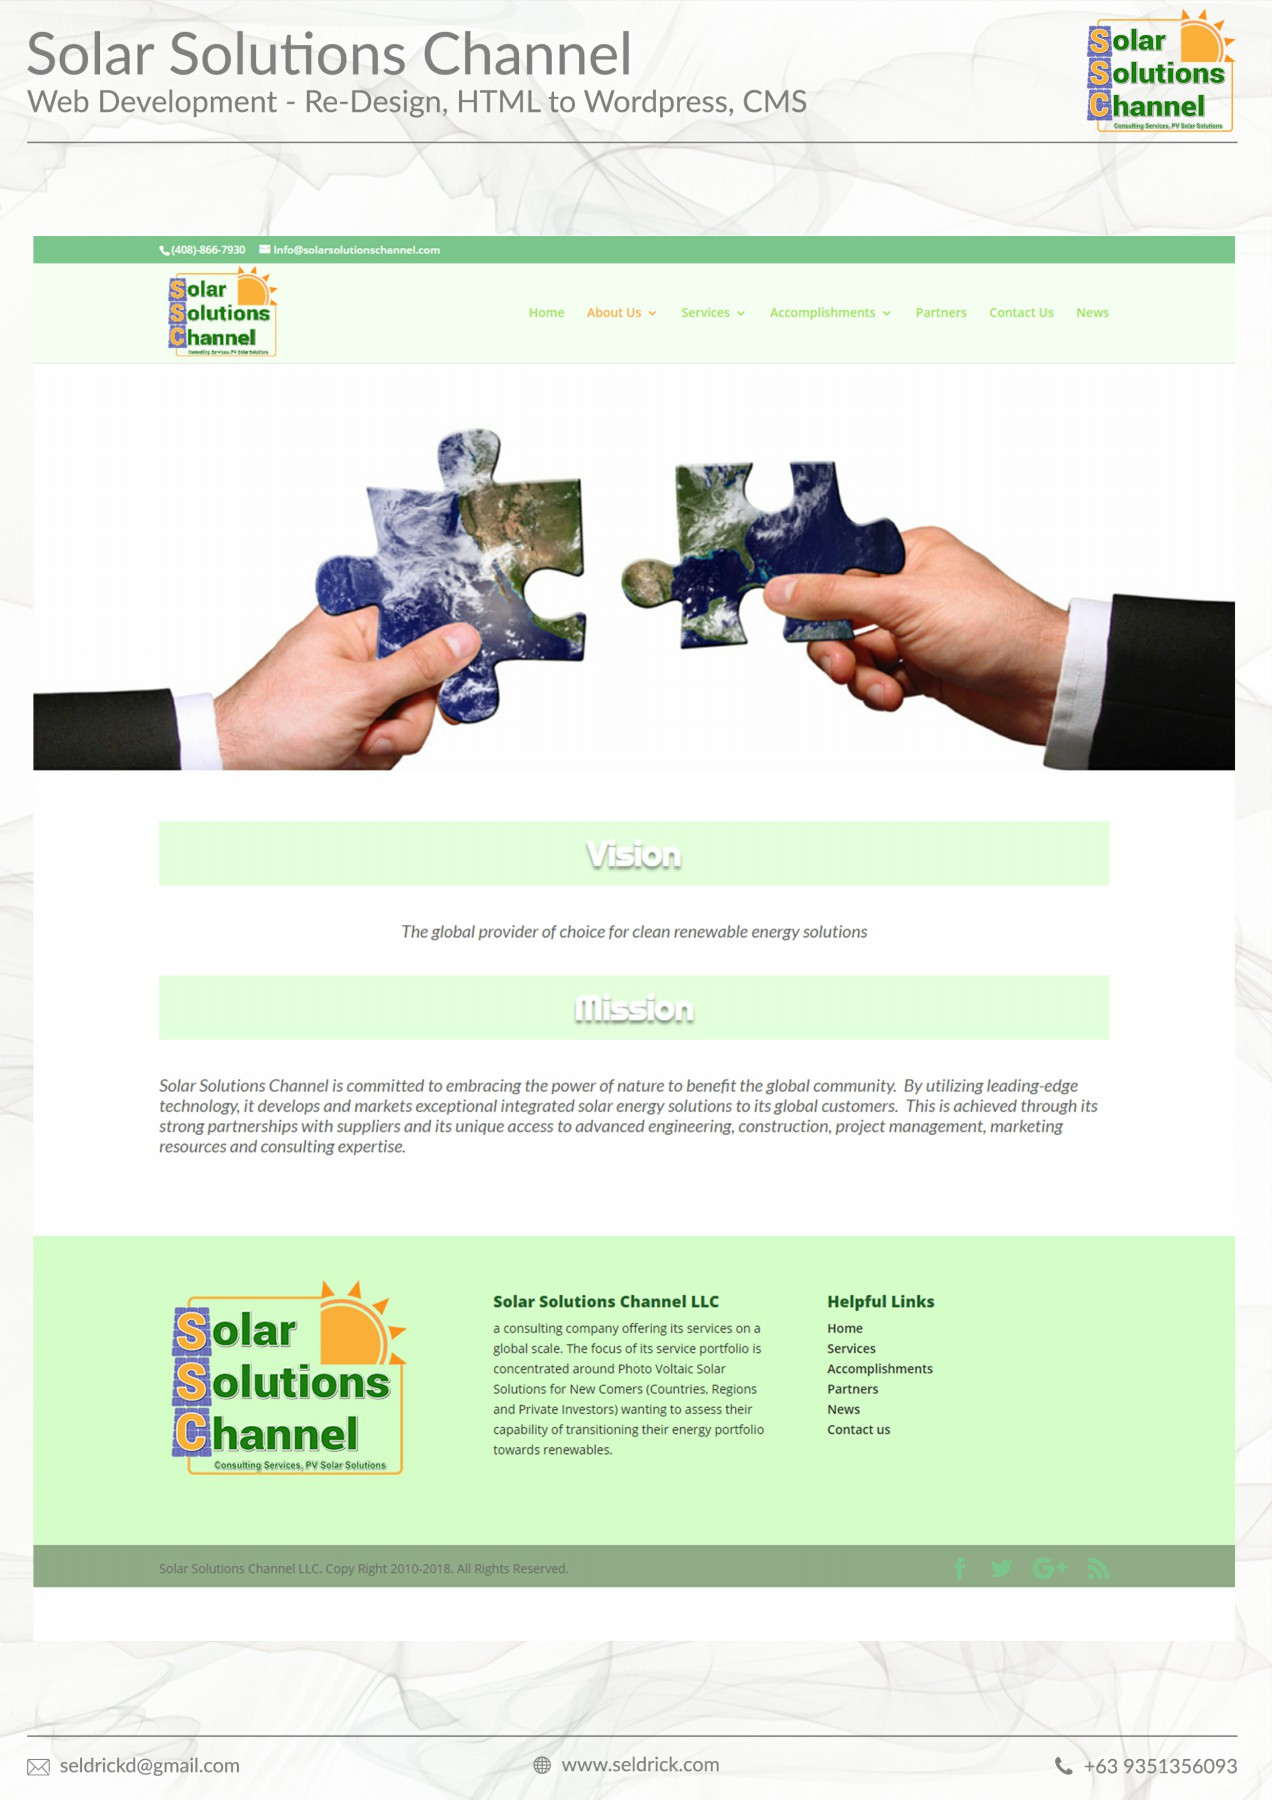 Small-ssc-website-page-4